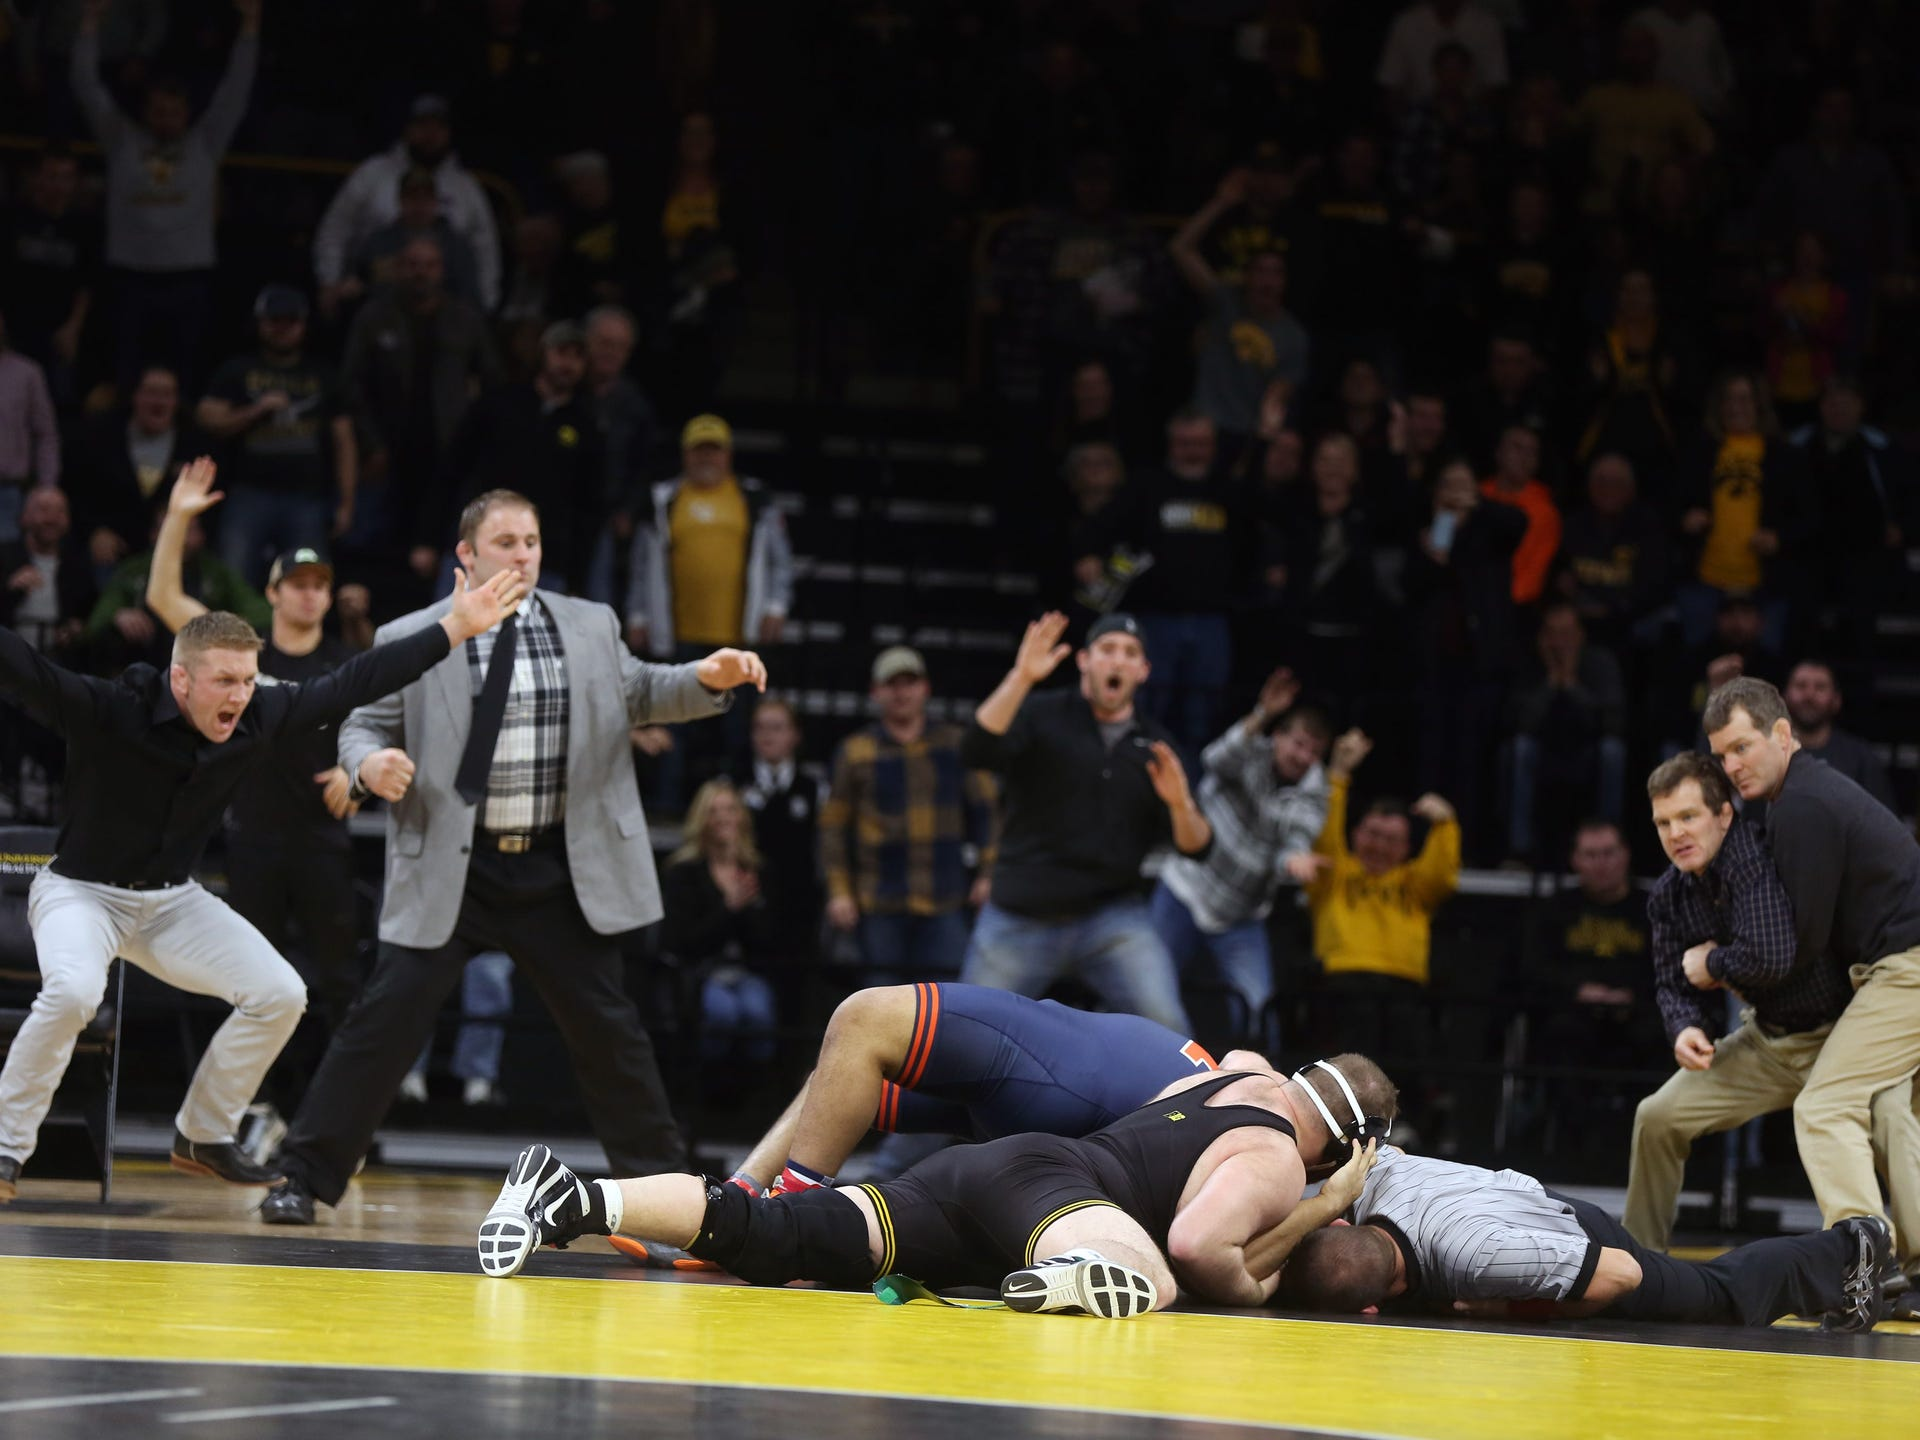 Photos Iowa vs Illinois wrestling 1920x1440